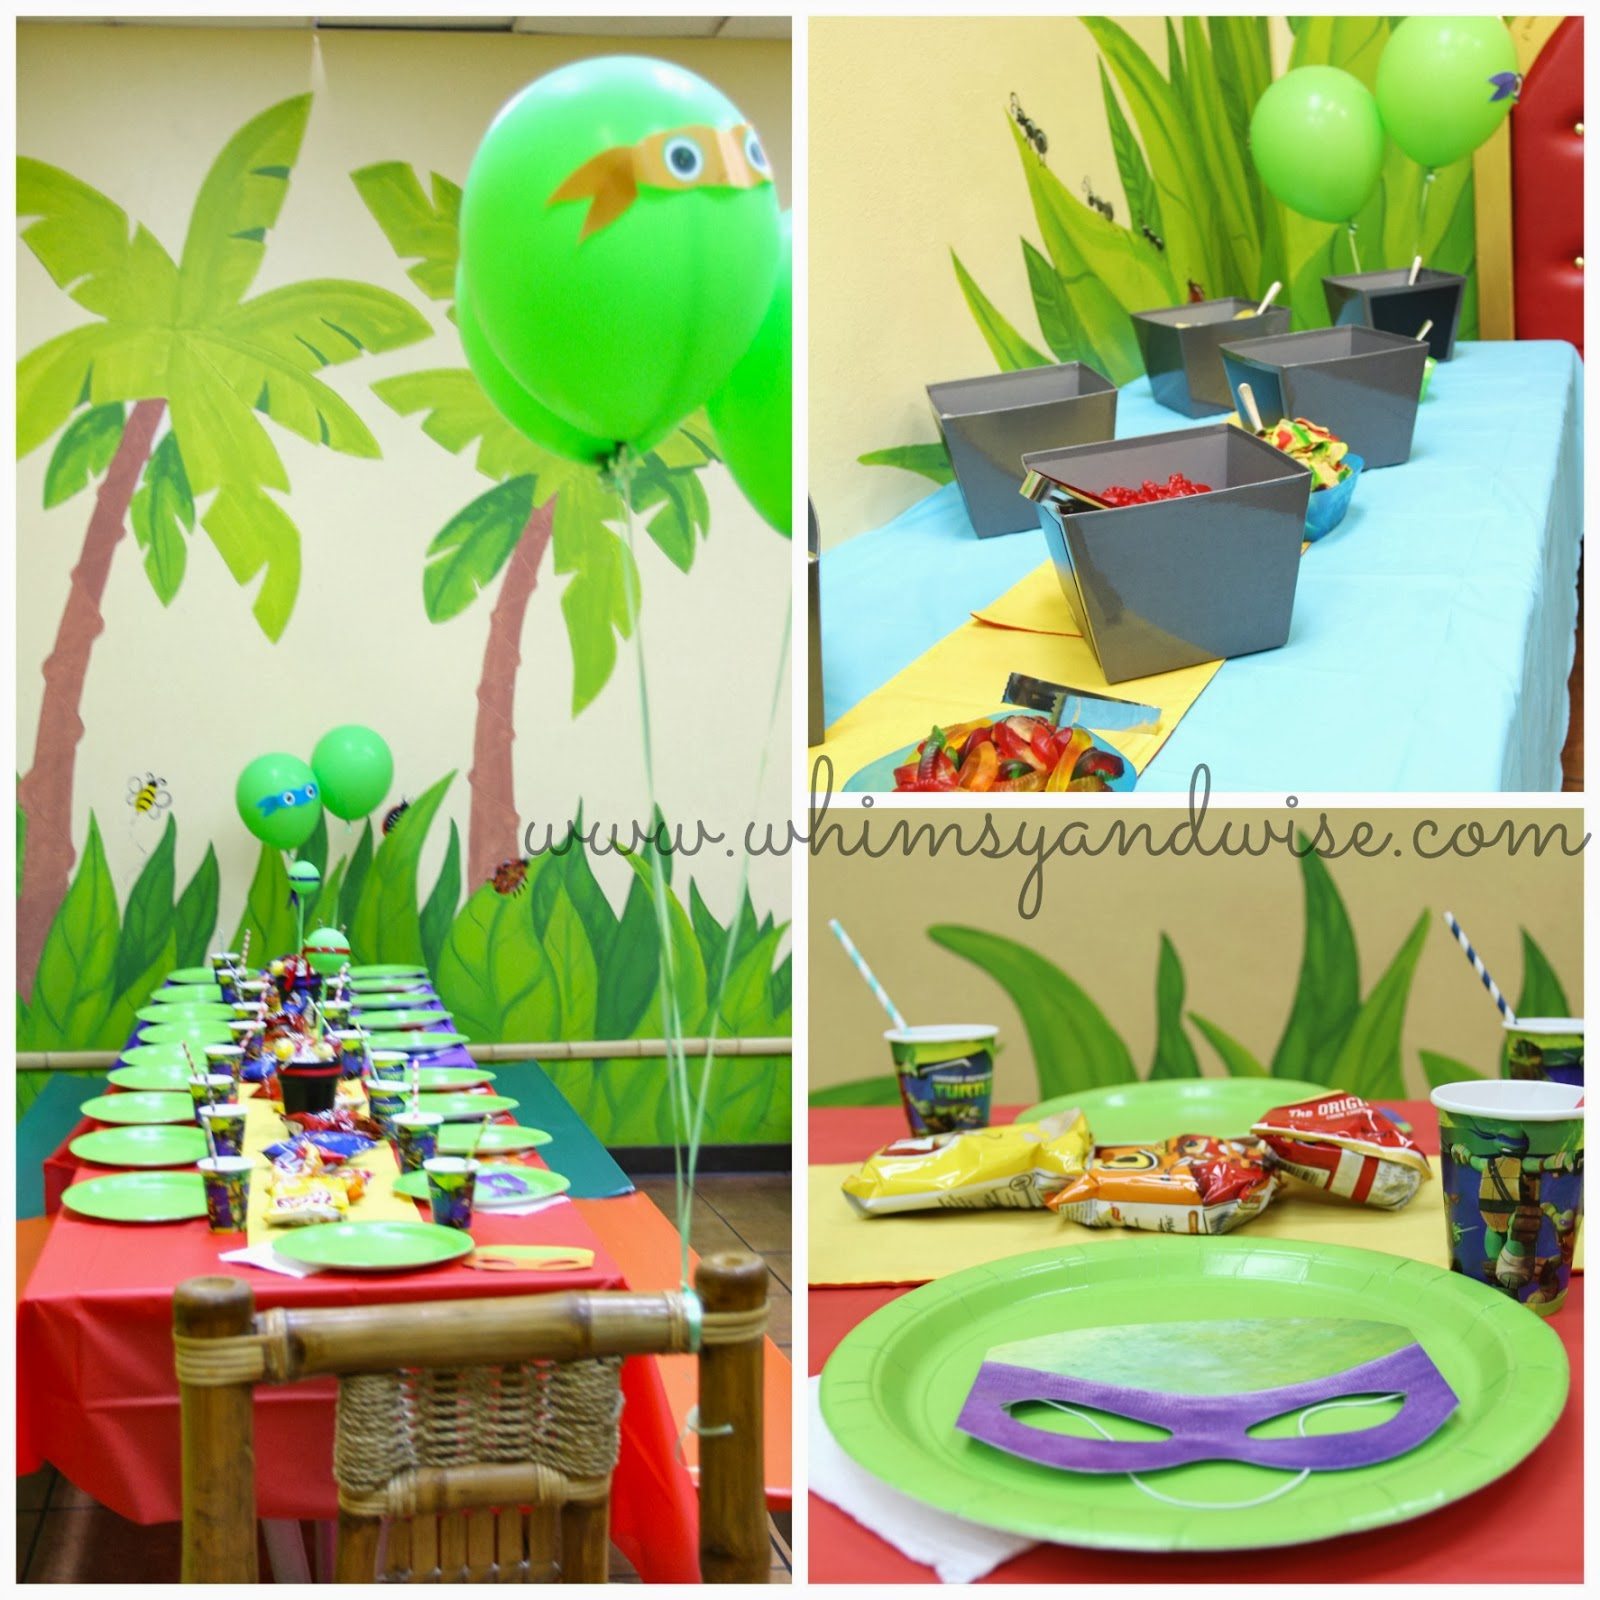 Whimsy wise events cowabunga dude it 39 s a tmnt birthday for Tmnt decorations